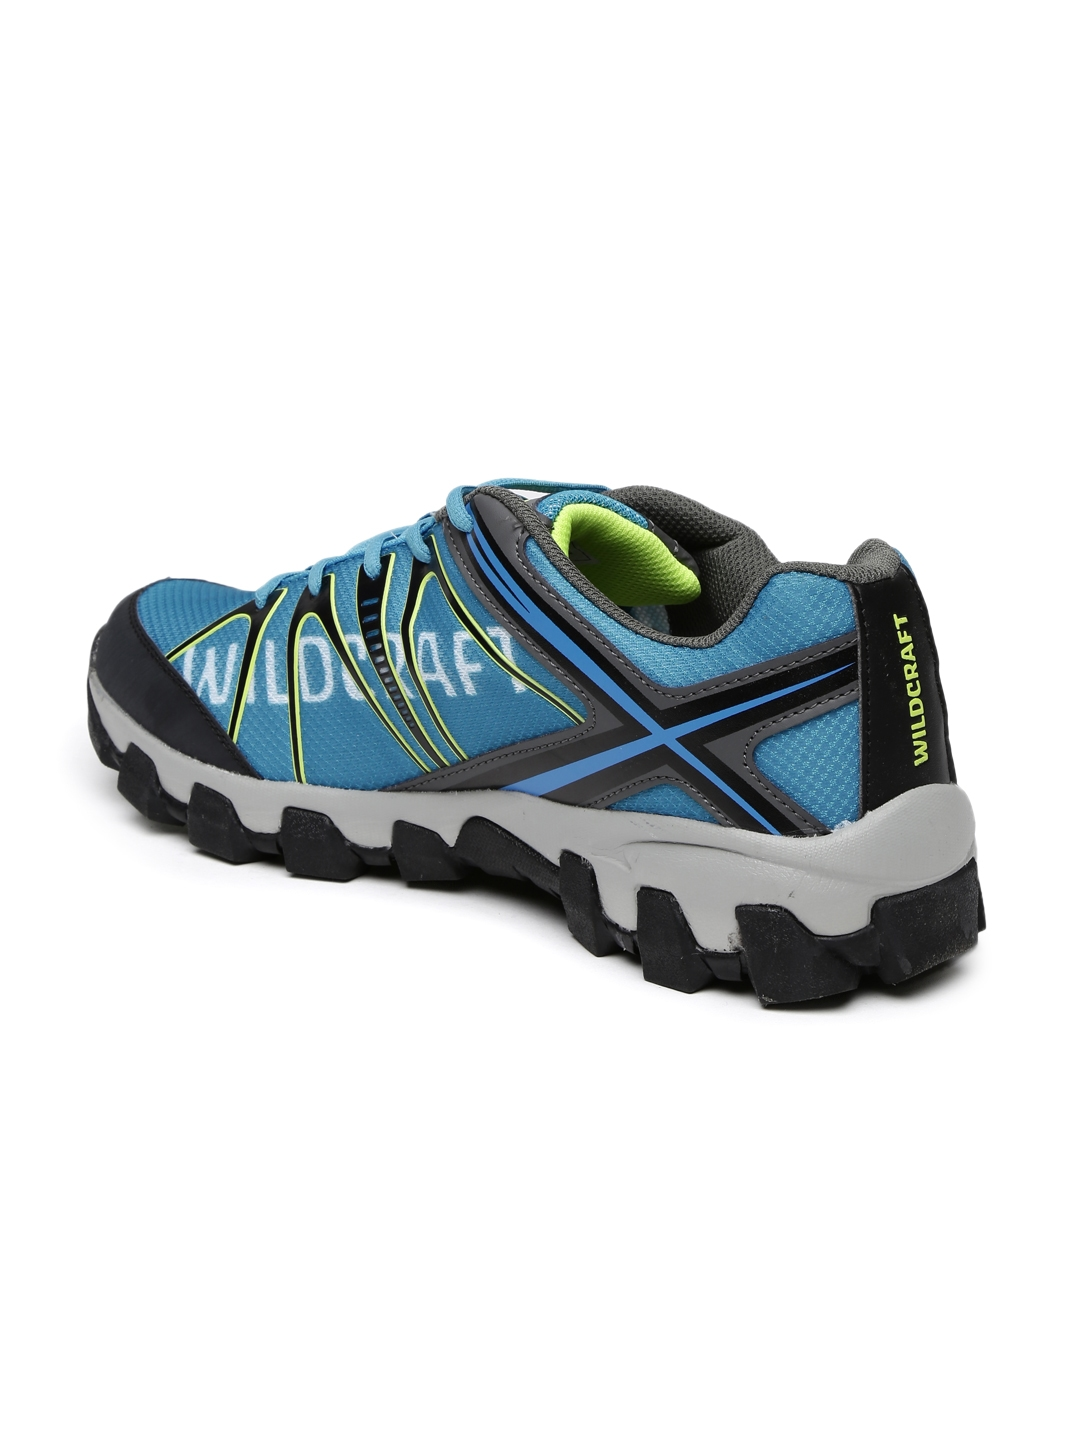 fb1a32ded7c57 Buy Wildcraft Men Blue Printed Orion Blue 11 M Trekking Shoes ...